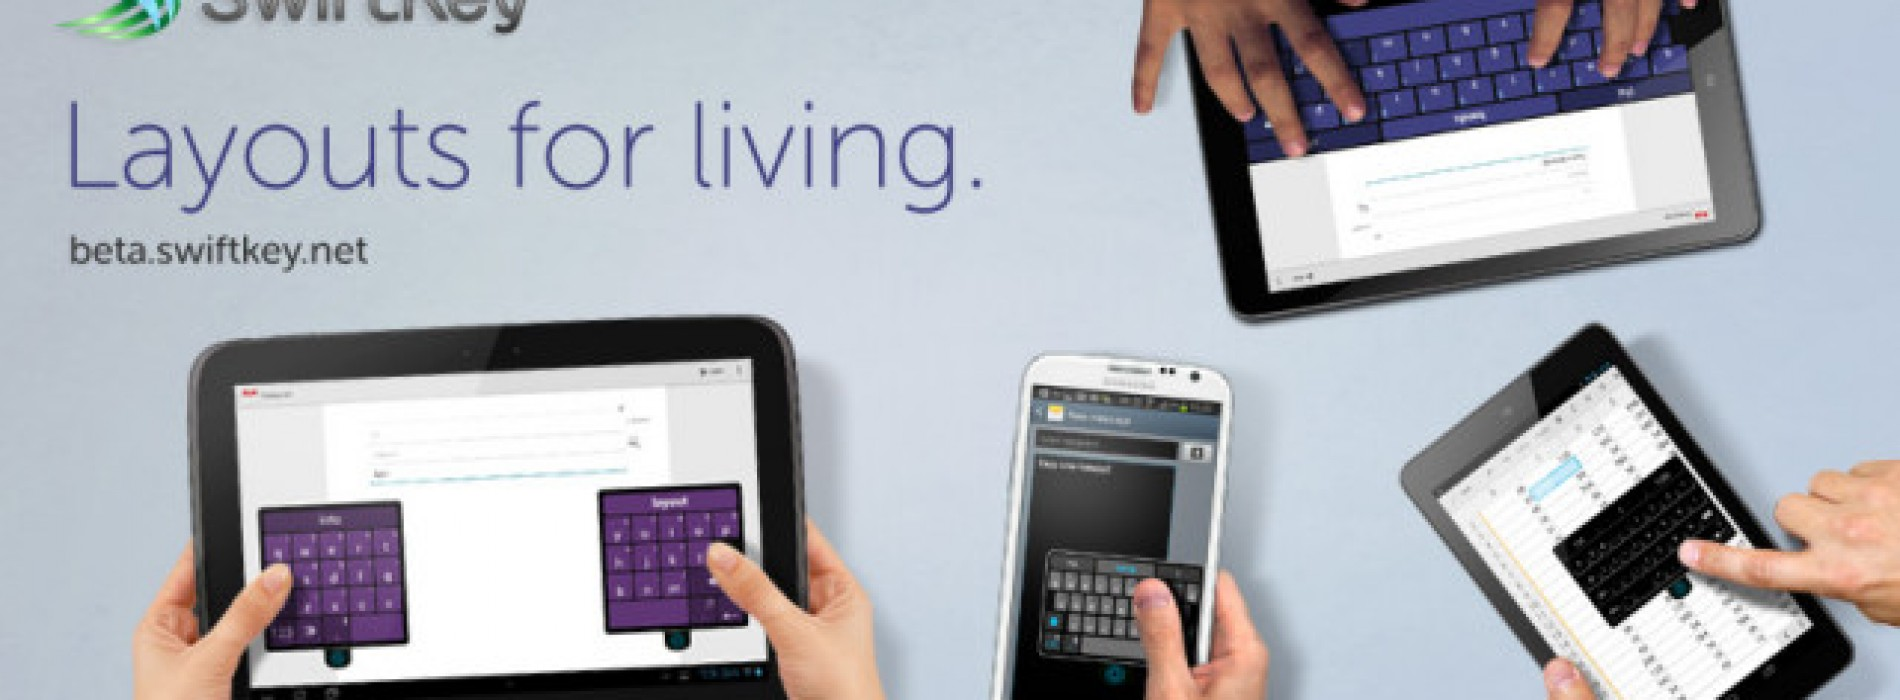 SwiftKey updates Android app with new 'Layouts for Living', changes the game for mobile keyboards